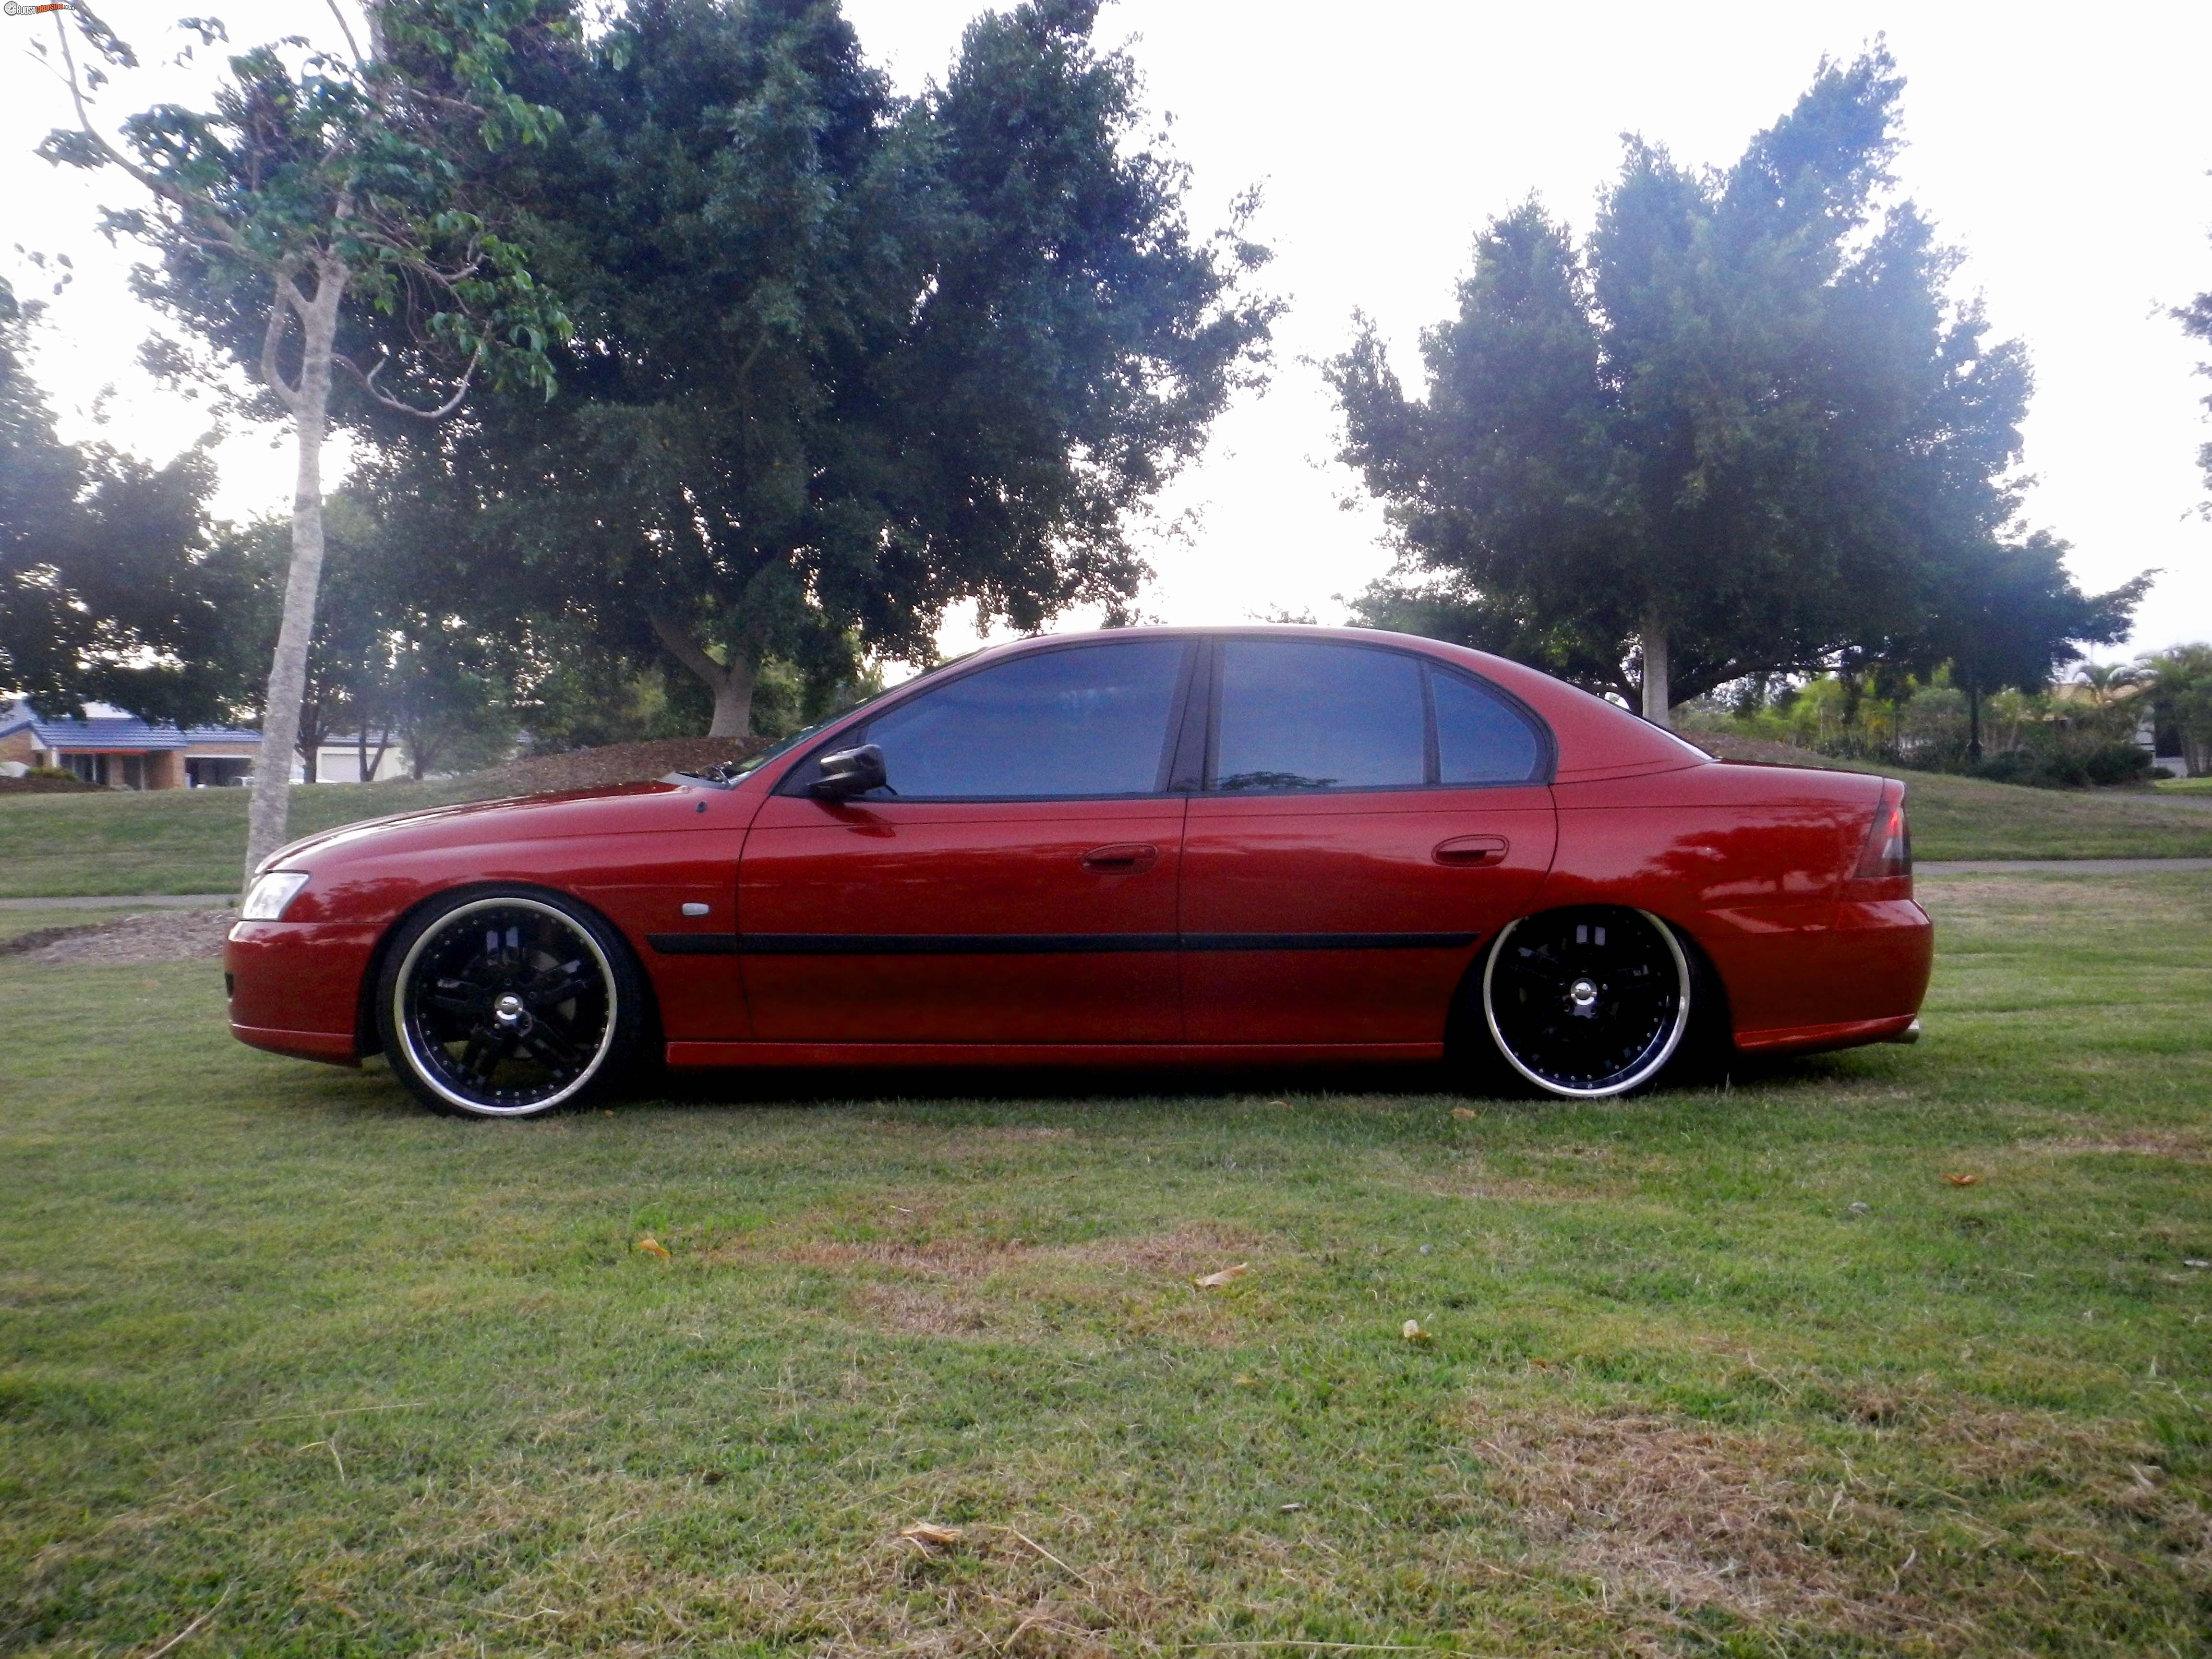 2005 Holden Commodore Bagged Vz - BoostCruising